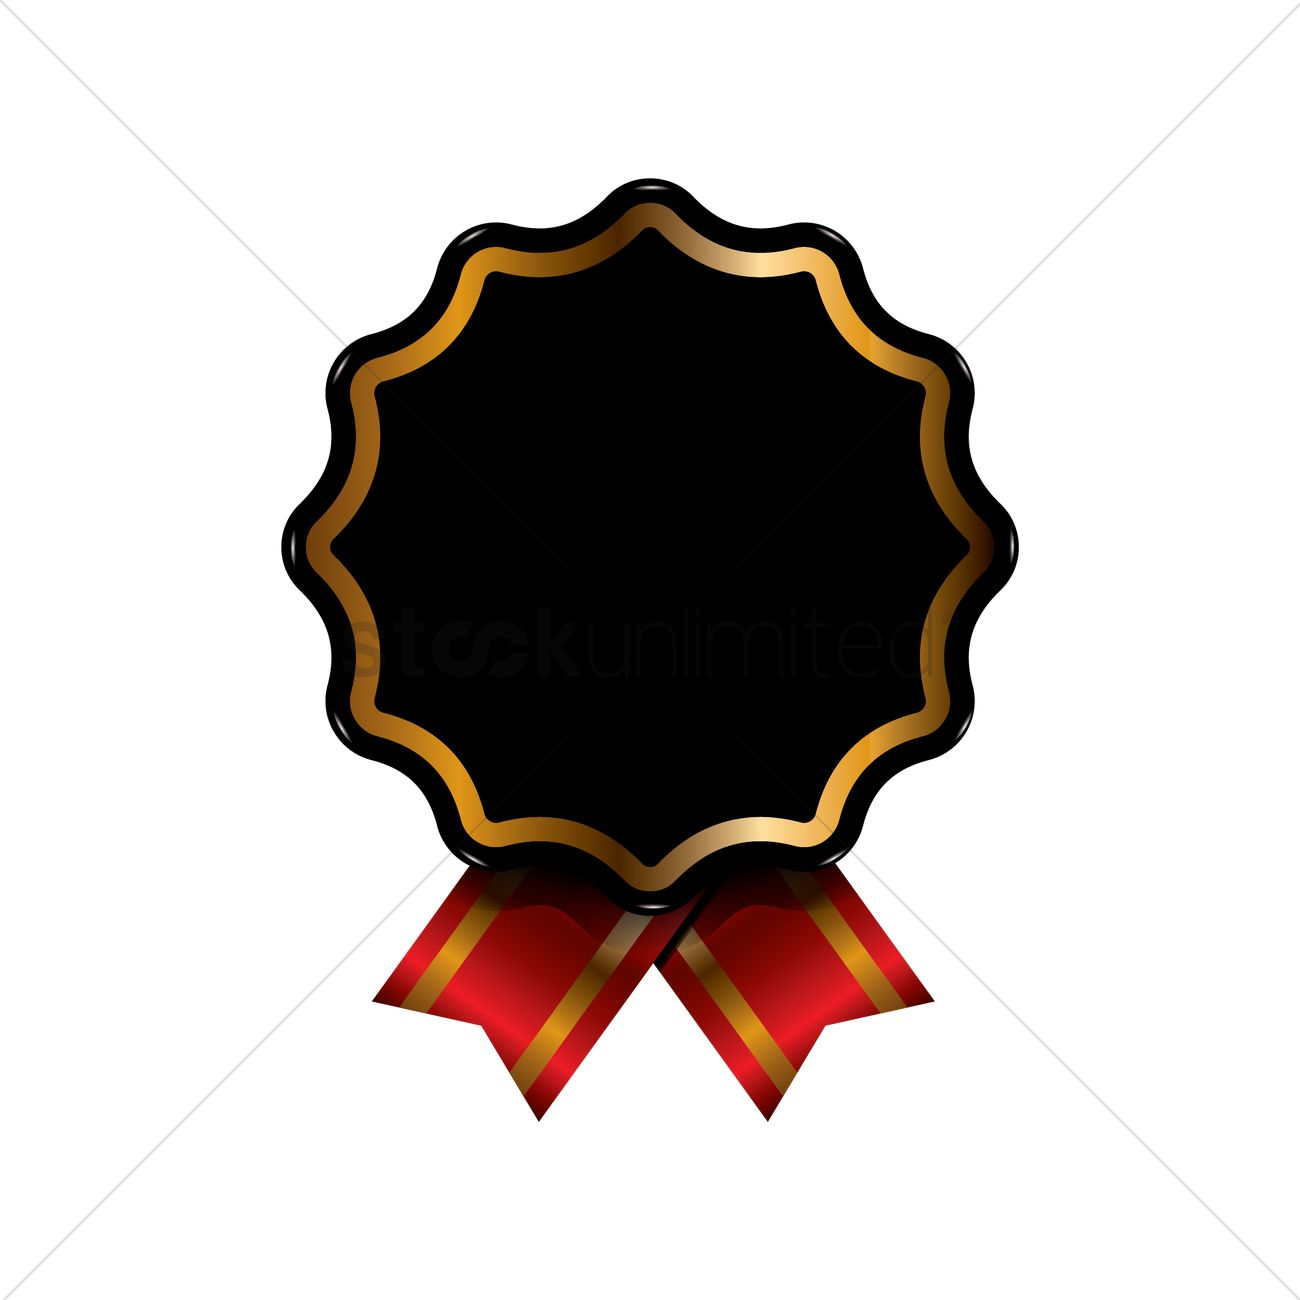 black and gold badge design vector image 1959186